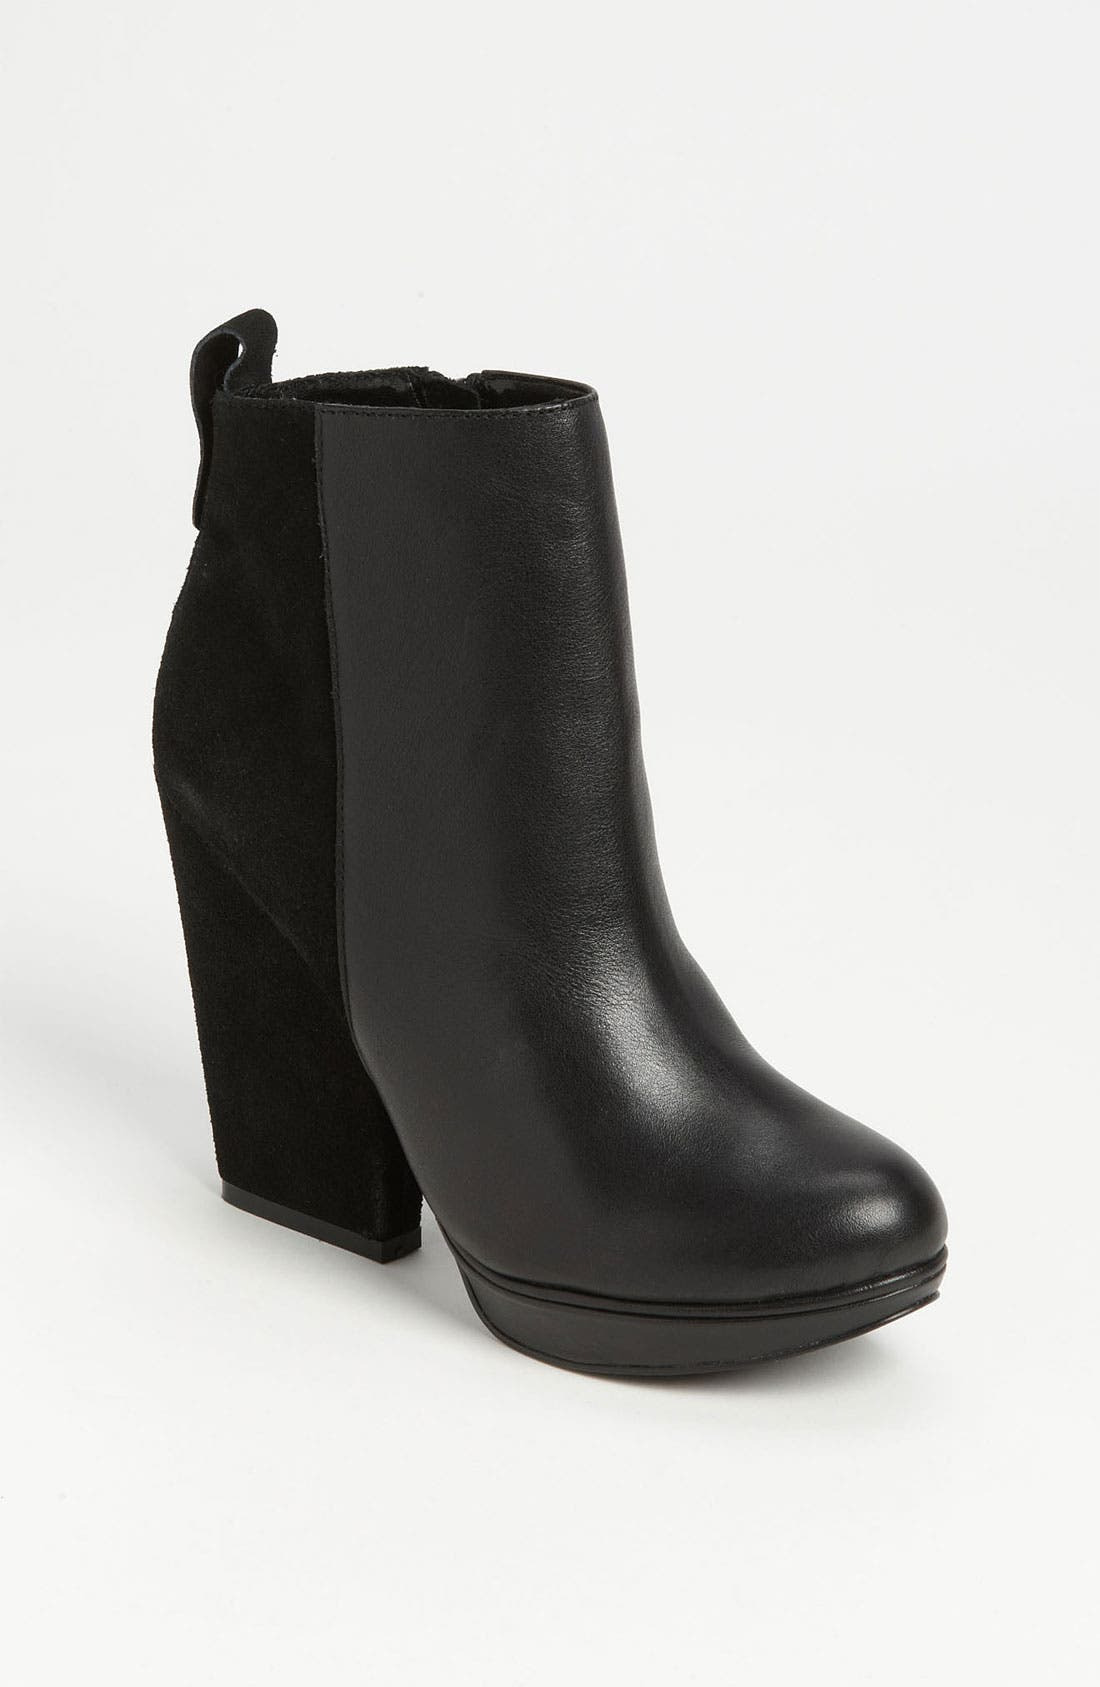 Alternate Image 1 Selected - Steve Madden 'Upstage' Bootie